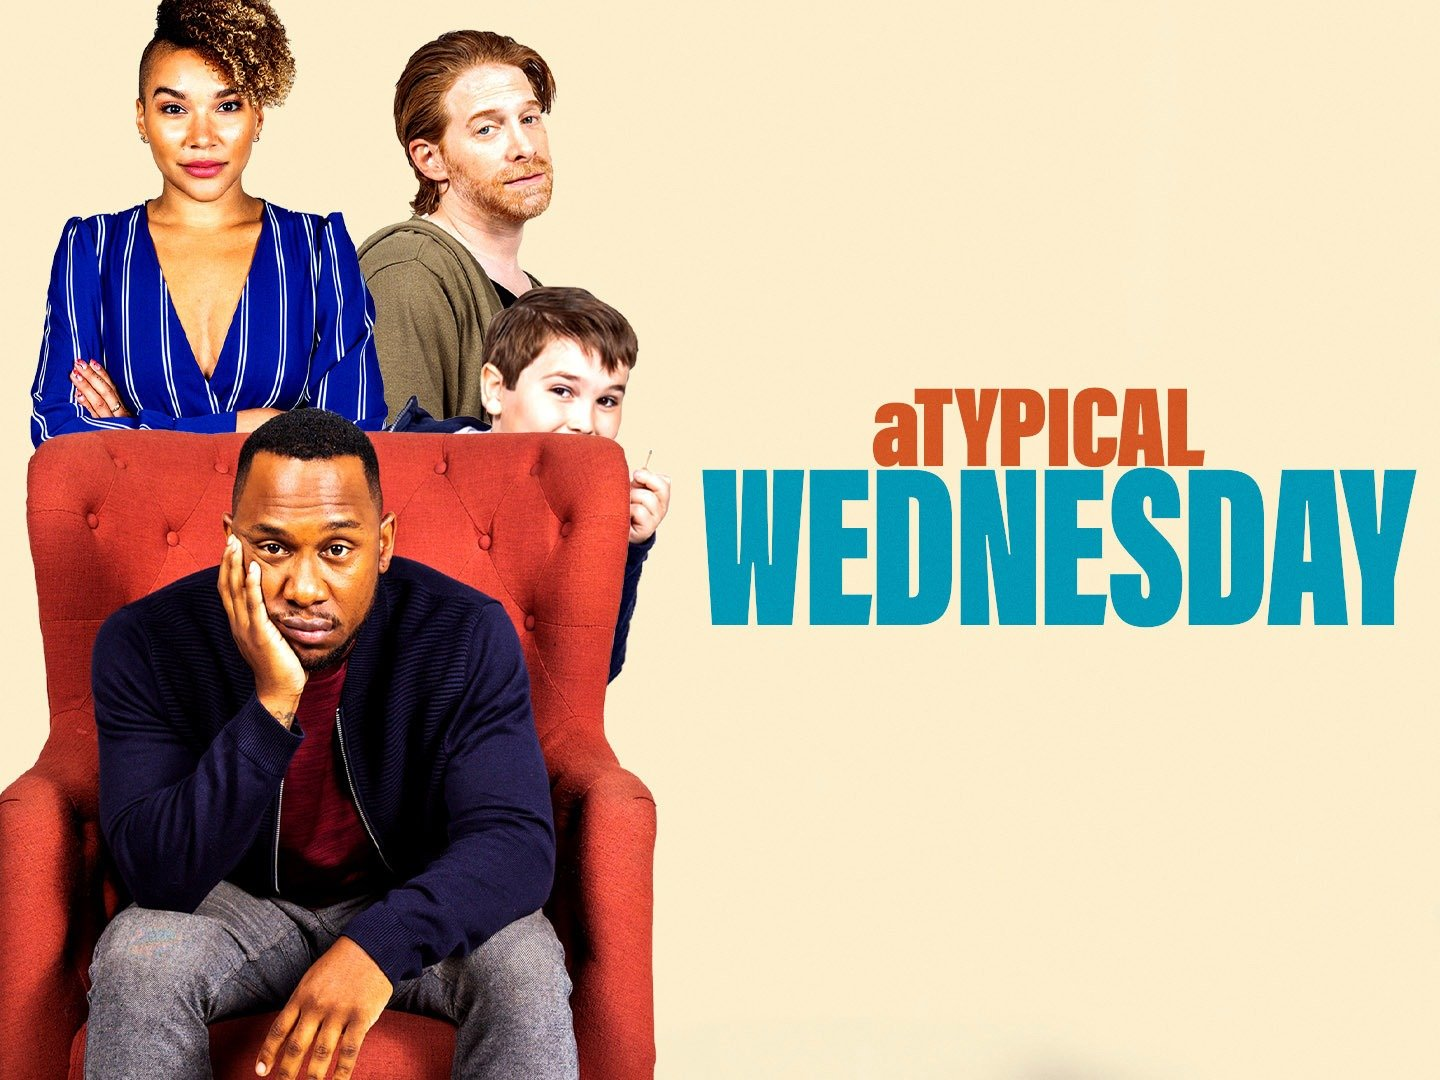 aTypical Wednesday | Flixster